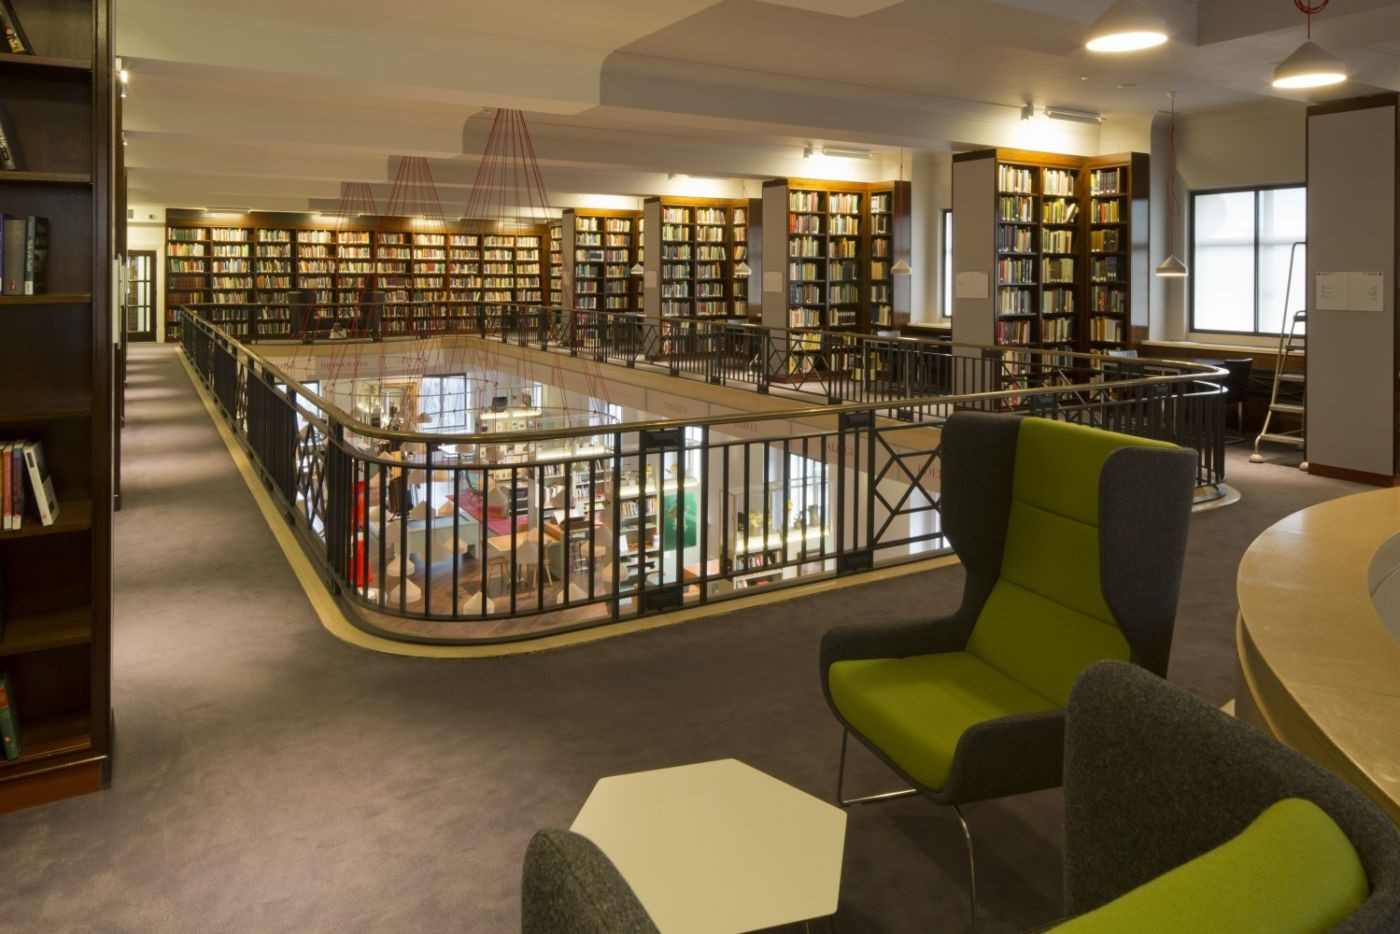 View of library looking down on seating area